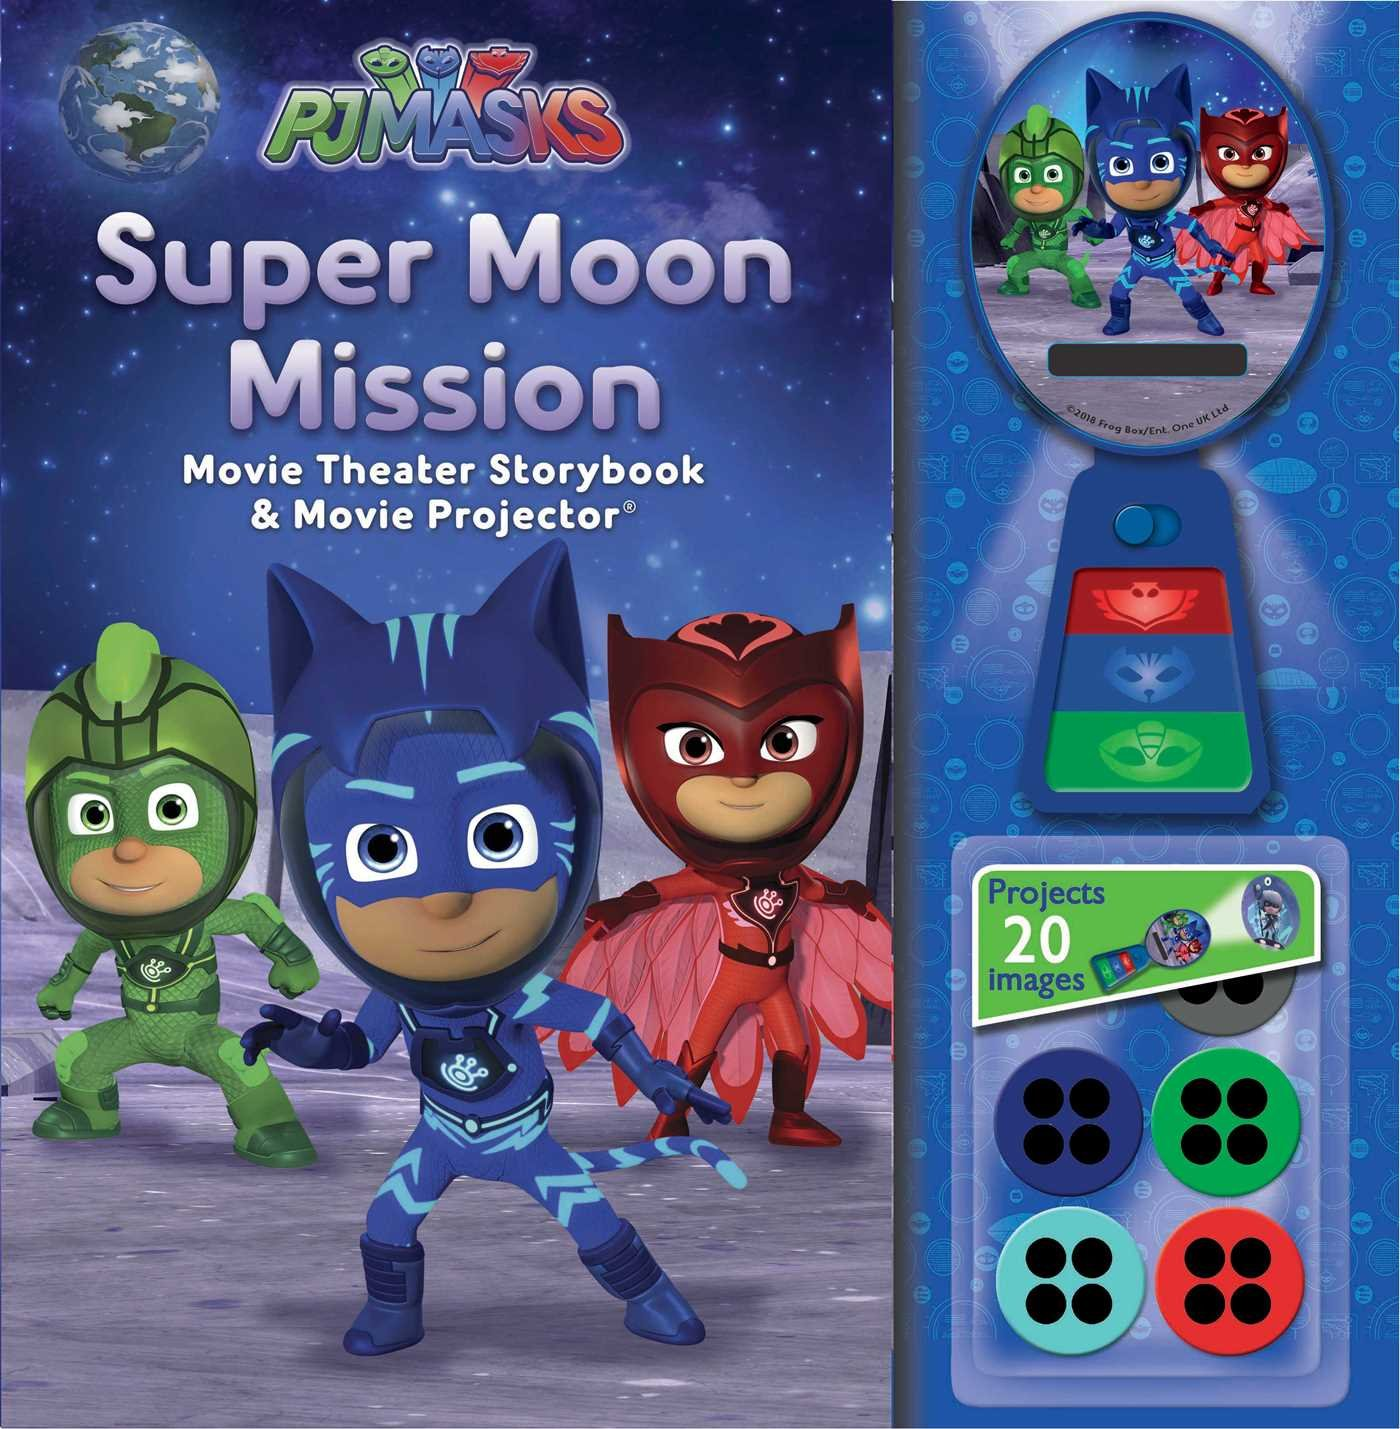 Pj Masks: Super Moon Mission Movie Theater & Storybook: Amazon.es: Pj Masks: Libros en idiomas extranjeros